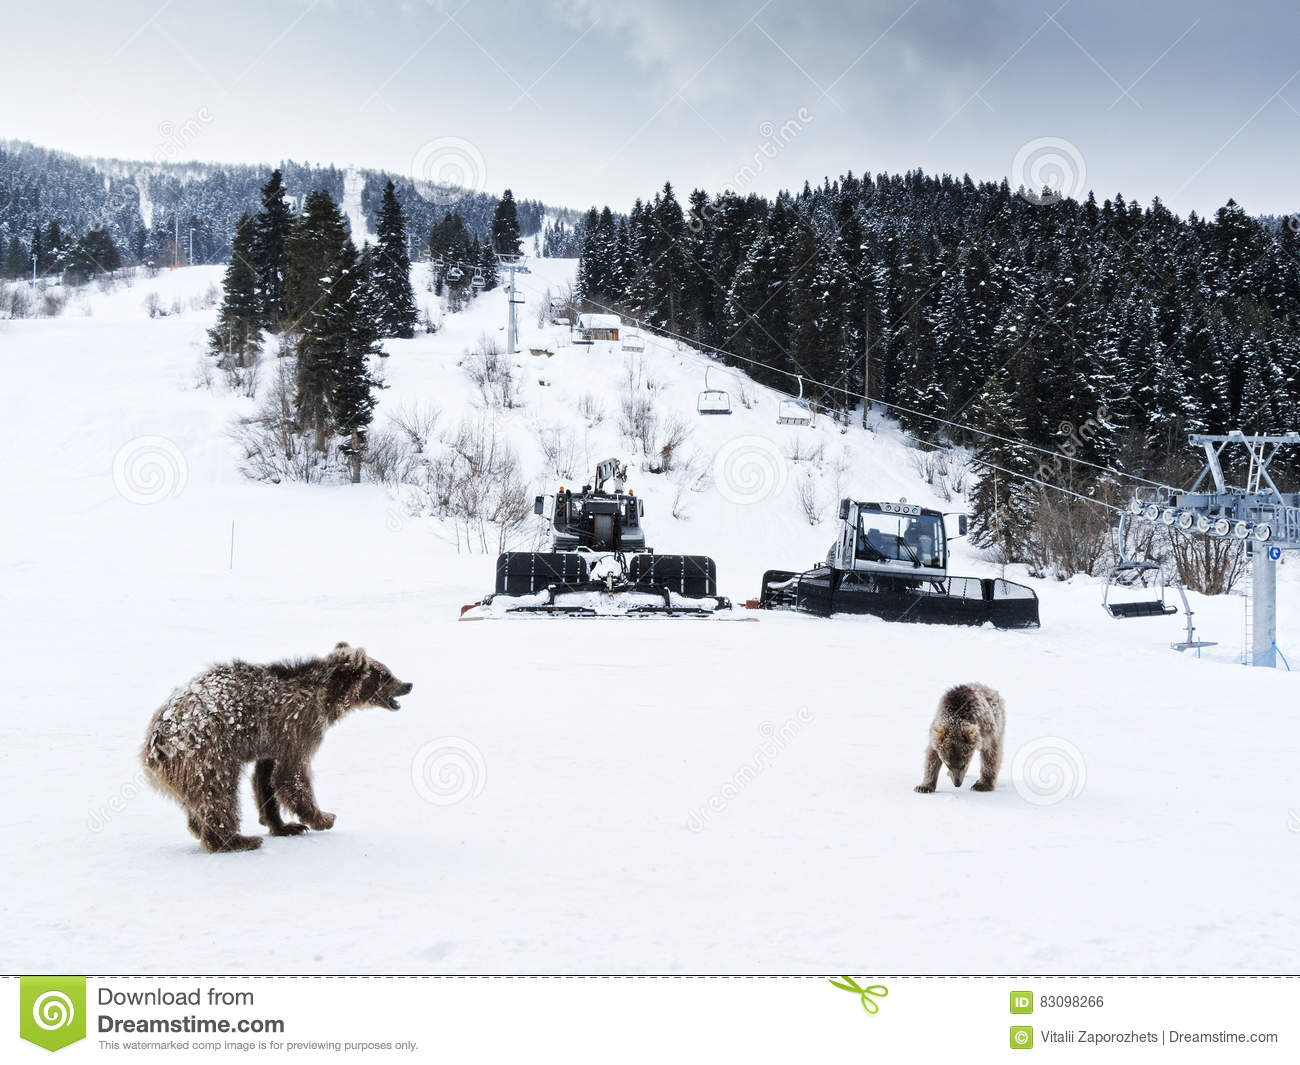 https://thumbs.dreamstime.com/z/winter-greater-caucasus-mountains-two-brown-bear-cubs-playing-georgia-country-mestia-ski-resort-svaneti-svanetia-region-83098266.jpg